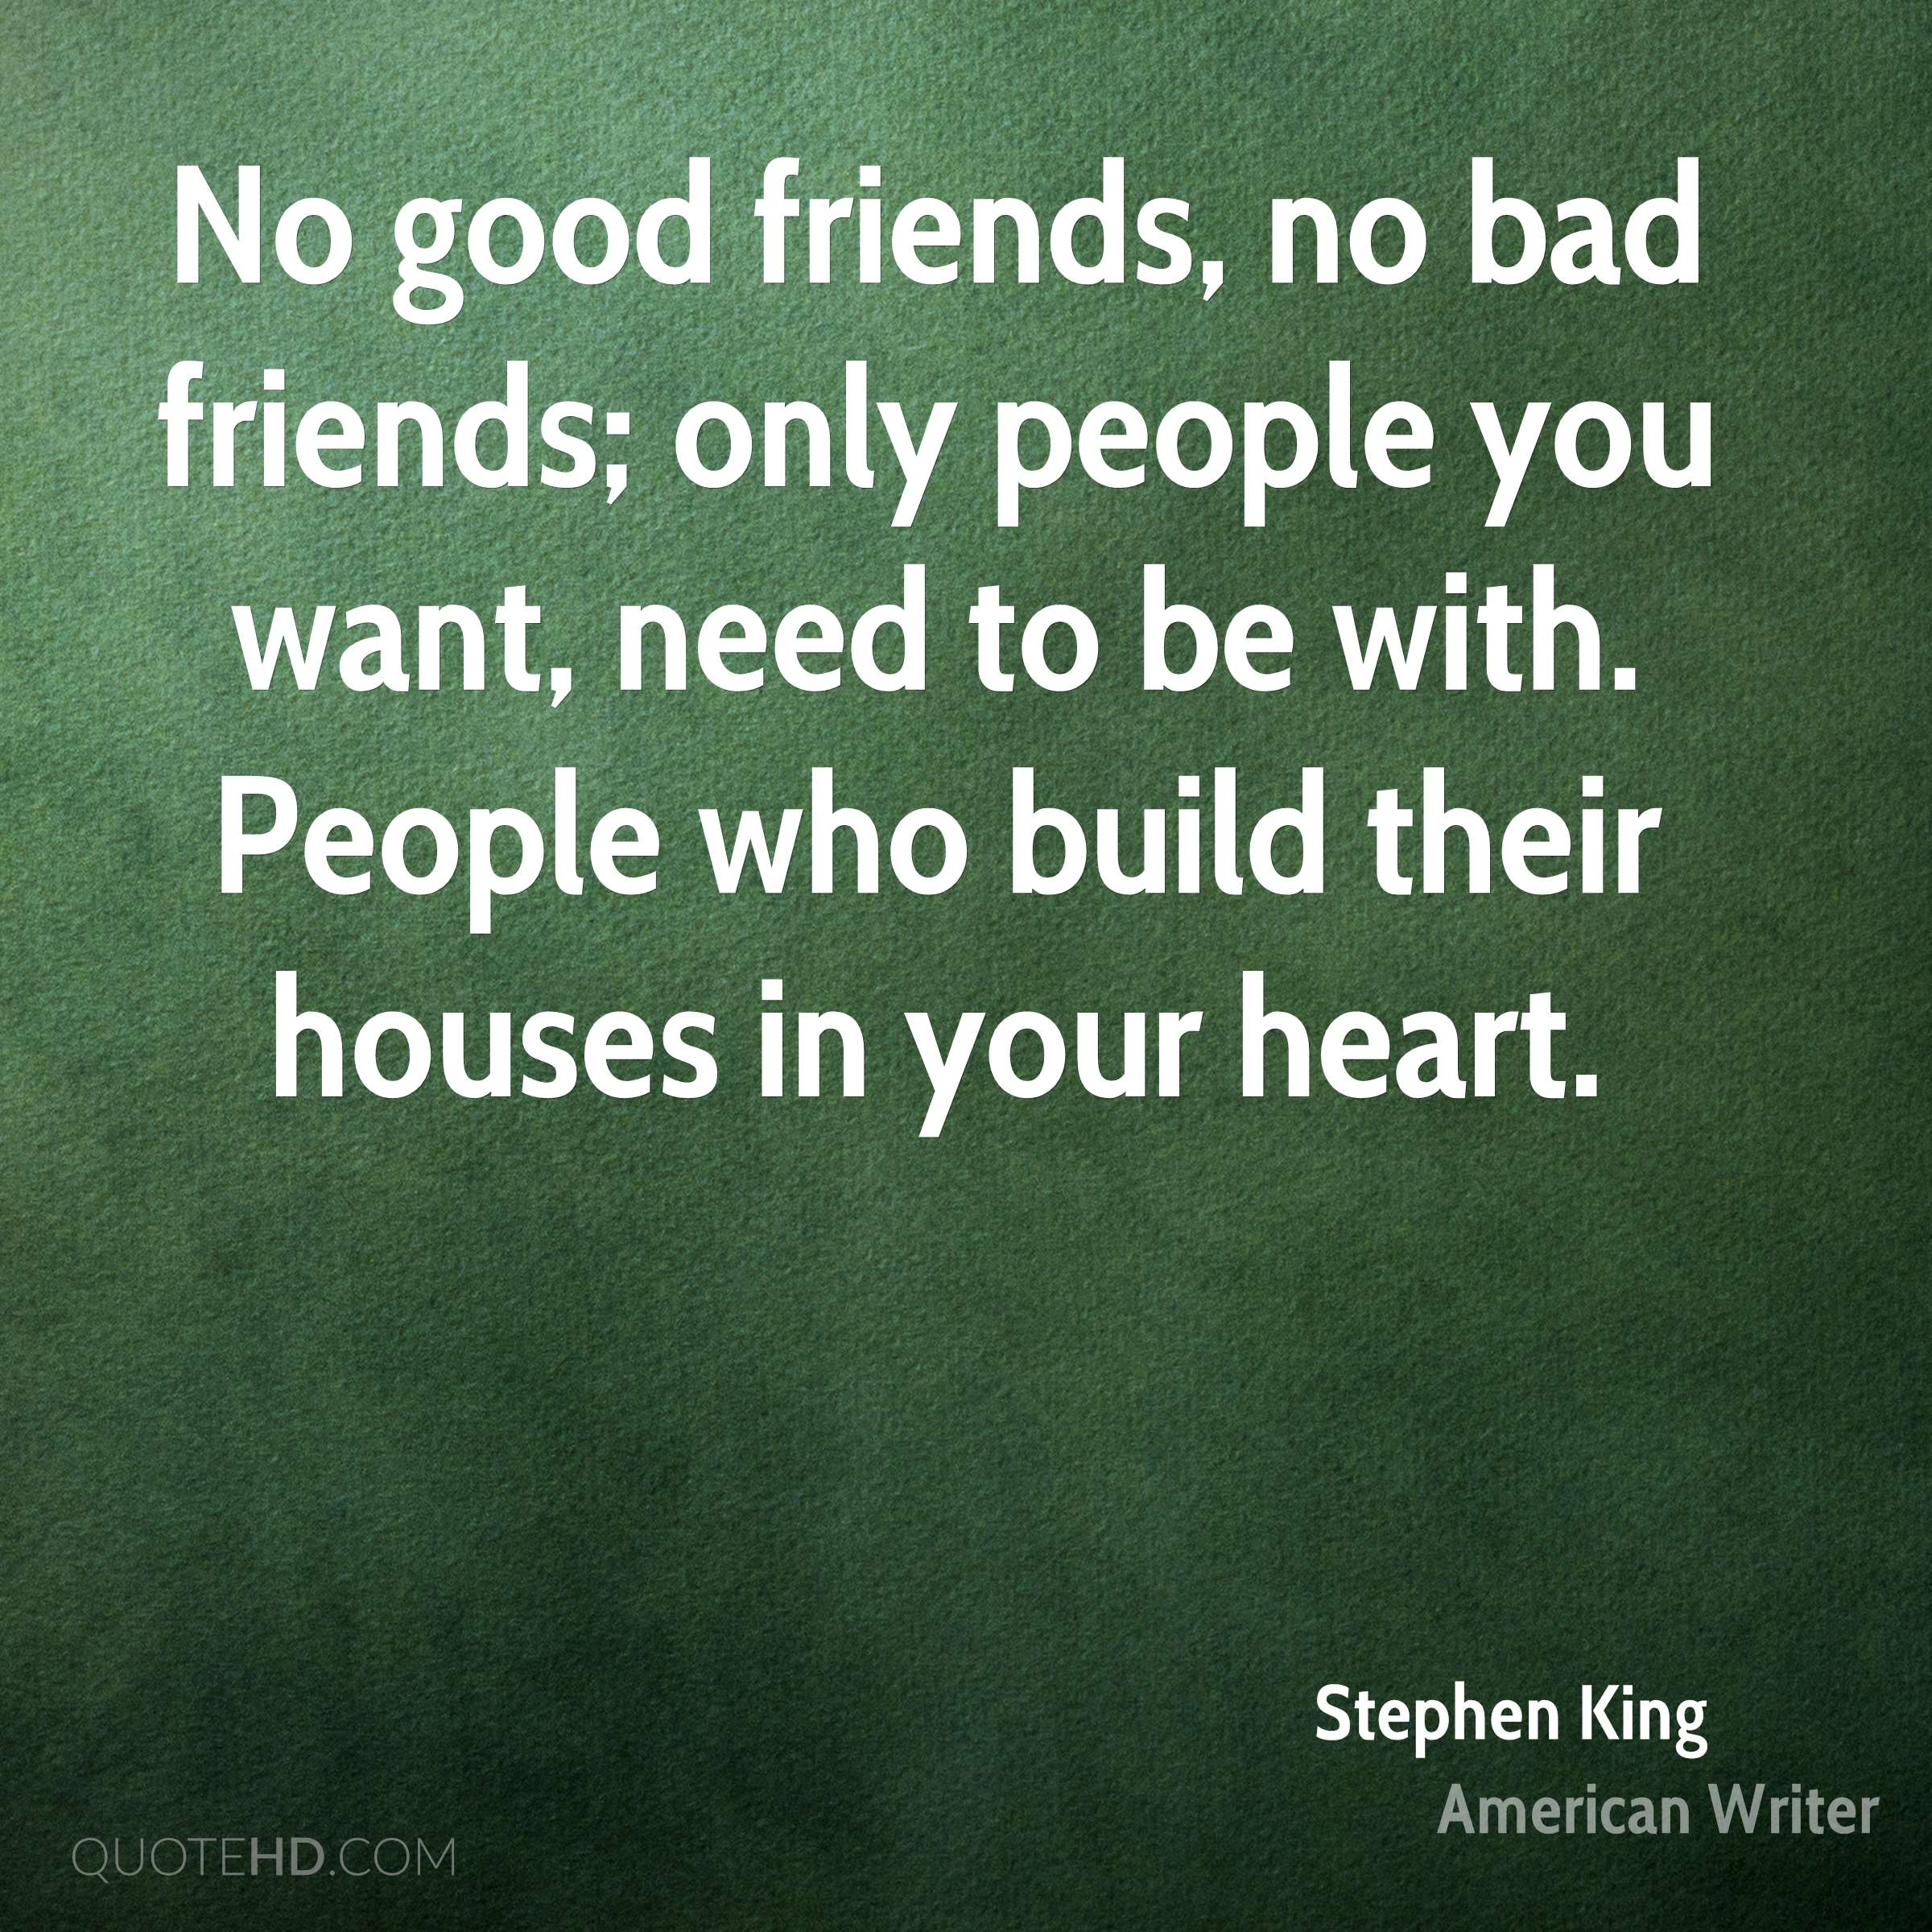 Good Quotes Bad Friends: Stephen King Quotes